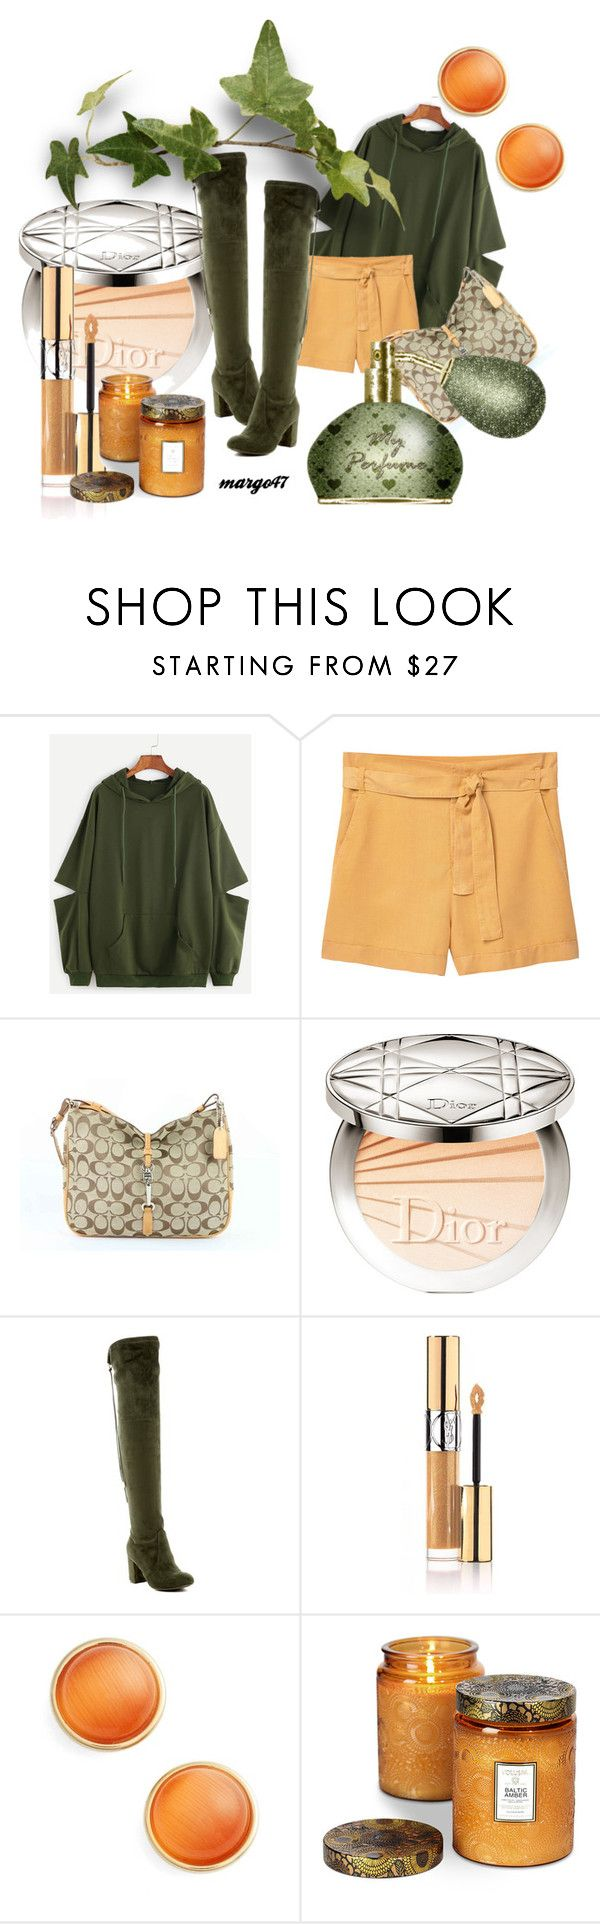 """""""szorty"""" by margo47 ❤ liked on Polyvore featuring MANGO, Coach, Christian Dior, Nature Breeze, Yves Saint Laurent, Kate Spade and Voluspa"""